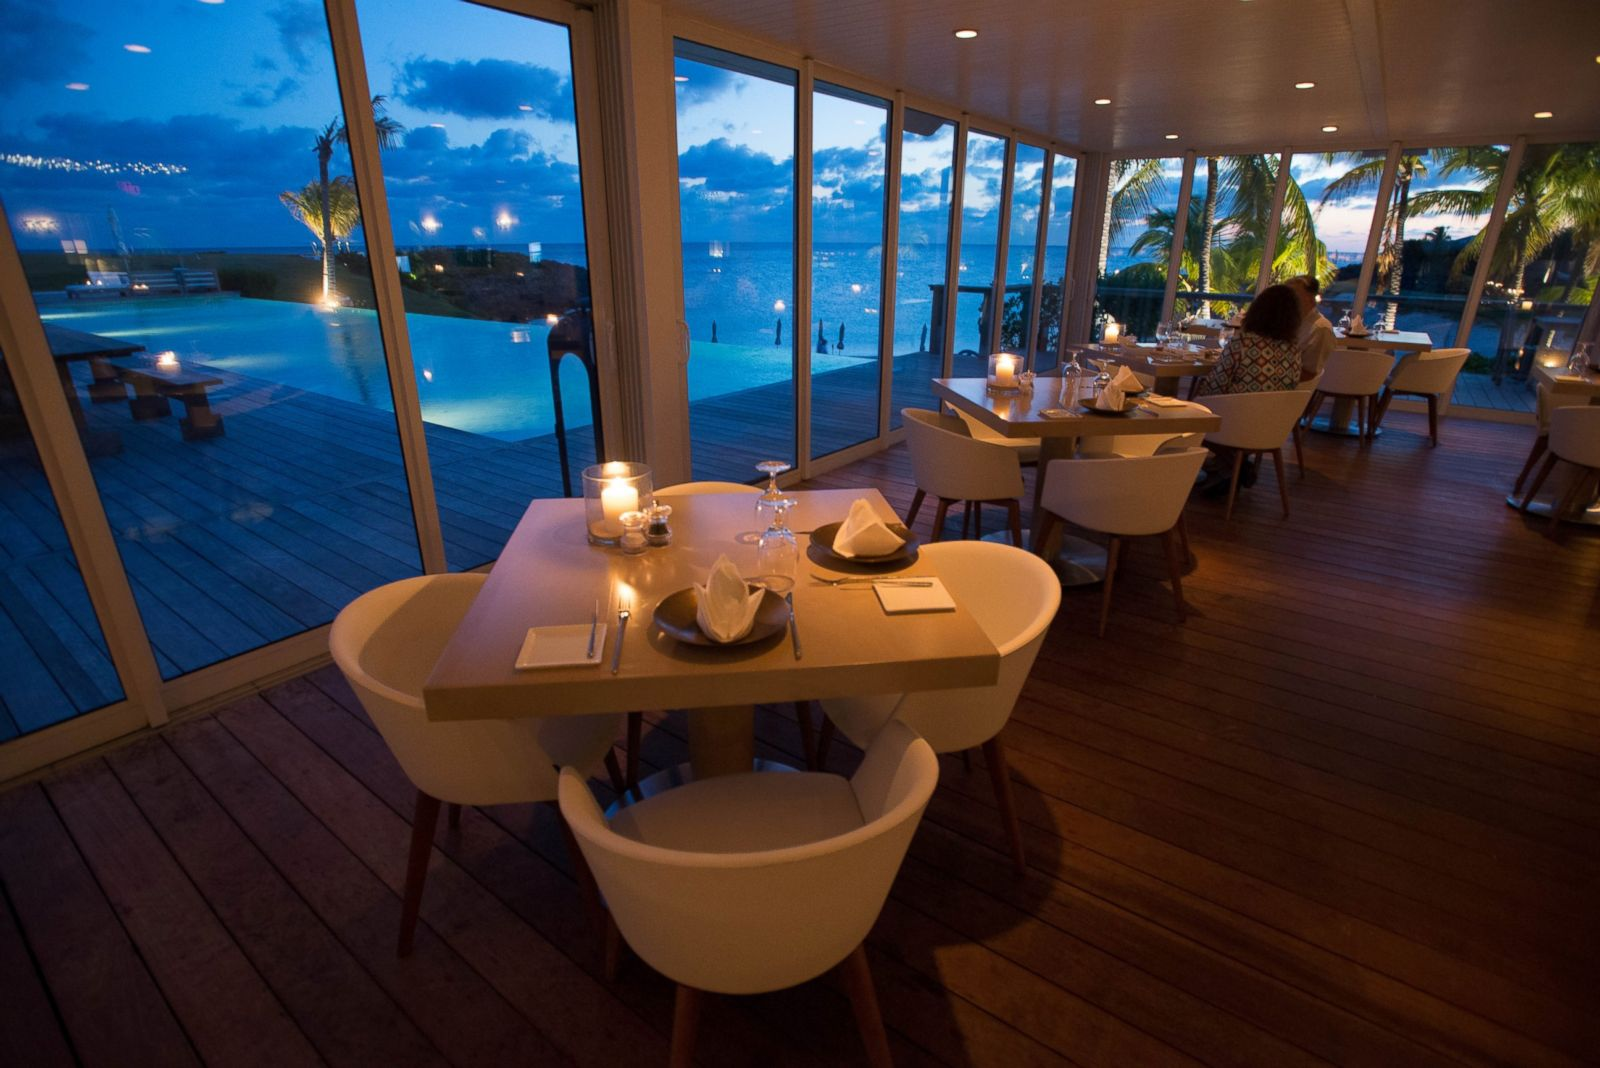 The cove eleuthera bahamas picture 10 of the best new for Luxury boutique hotels worldwide